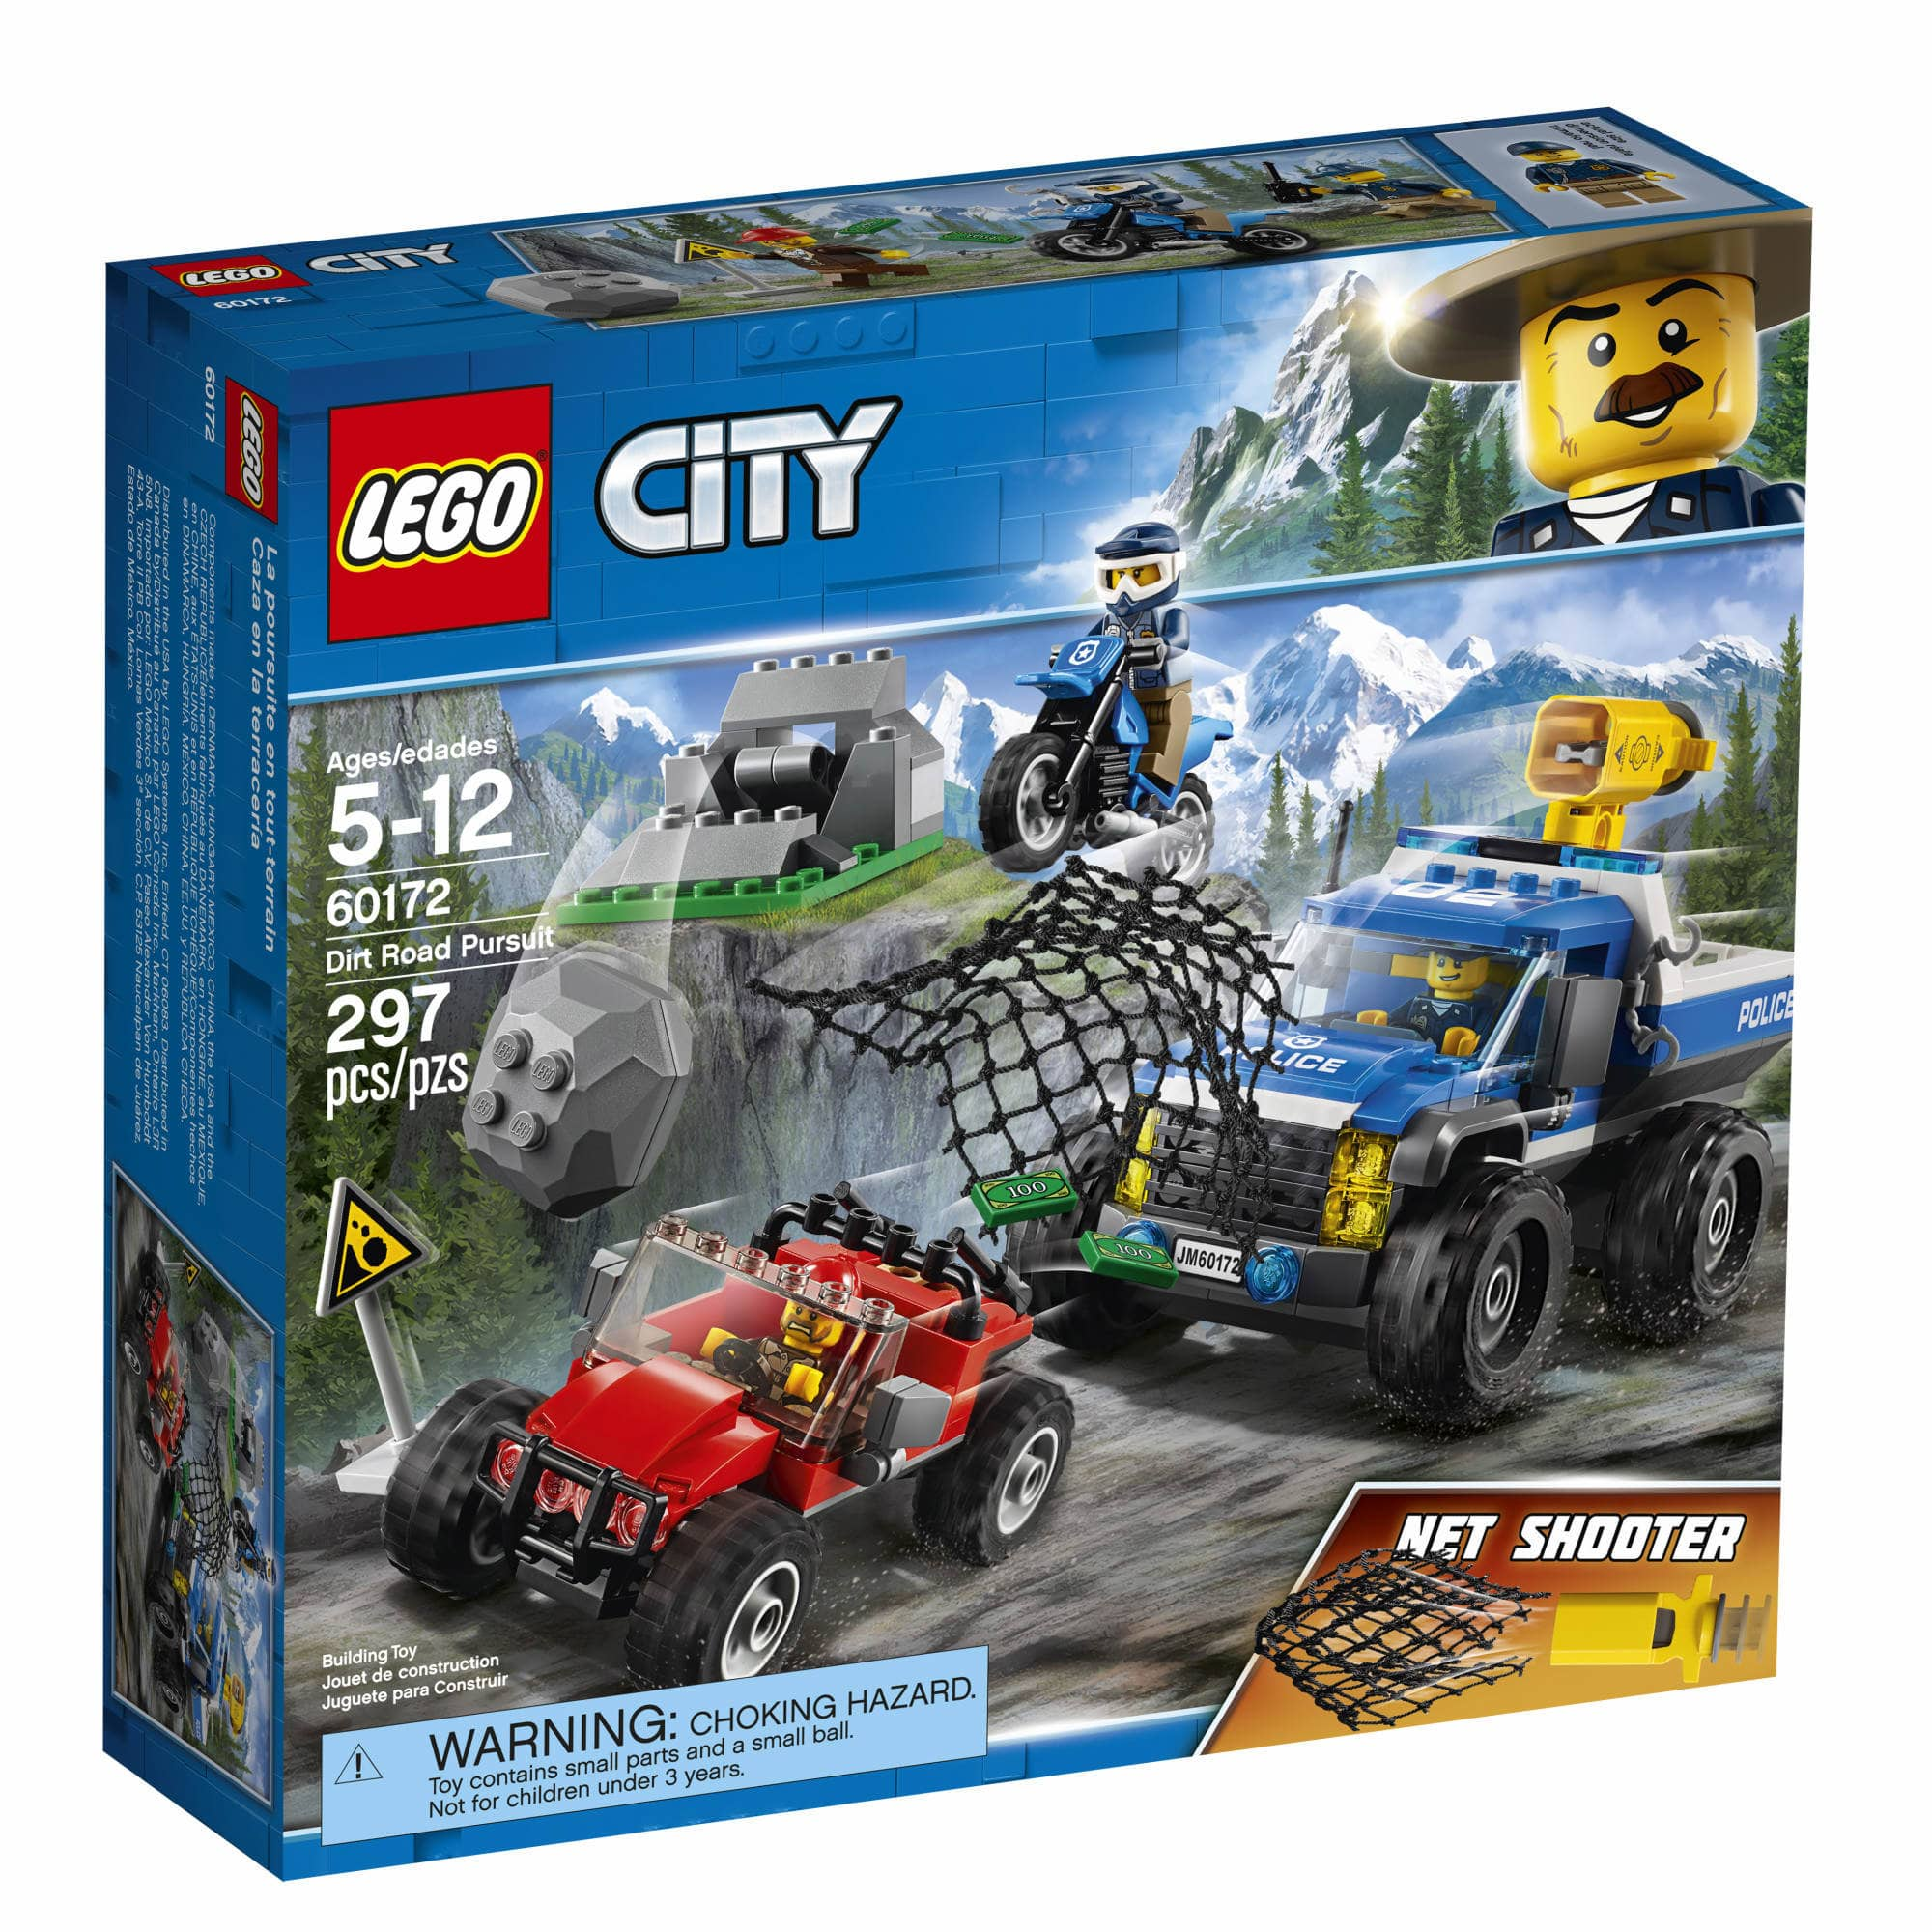 BJ's Members: LEGO City Dirt Road Pursuit, 297 Pcs (60172) $27.99 And More